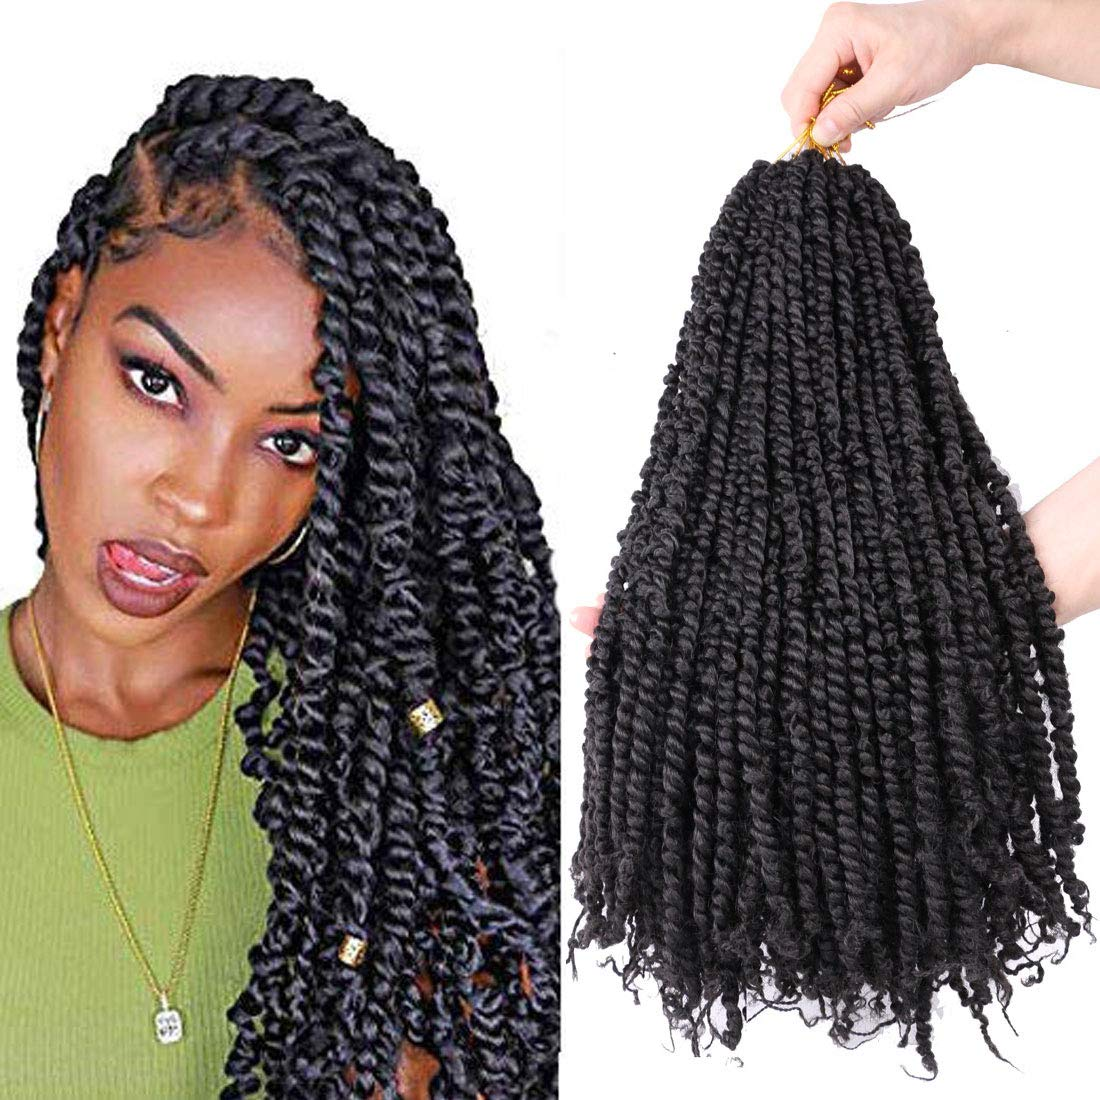 Amazon Com Flyteng 6 Packs Crochet Passion Twist Hair Pretwisted 18 Inch 20 Roots Pack Passion Twists Crochet Hair Extensions Pre Looped Passion Twist Crochet Hair Beauty